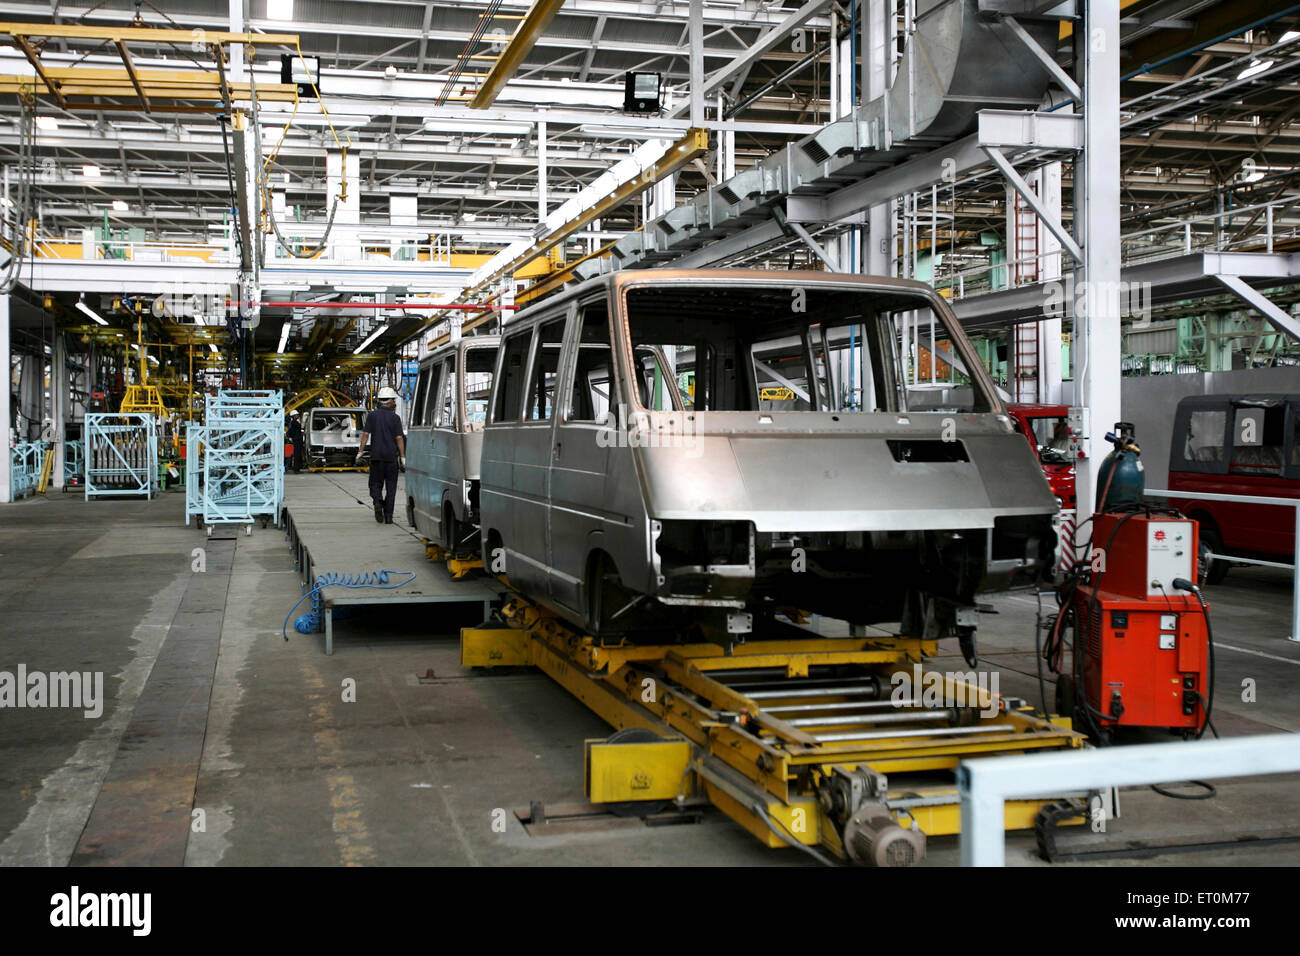 tata motors of india Tata motors limited manufactures cars and commercial automotive vehicles in india the company designs, manufactures and sells heavy commercial, medium commercial and small commercial vehicles.